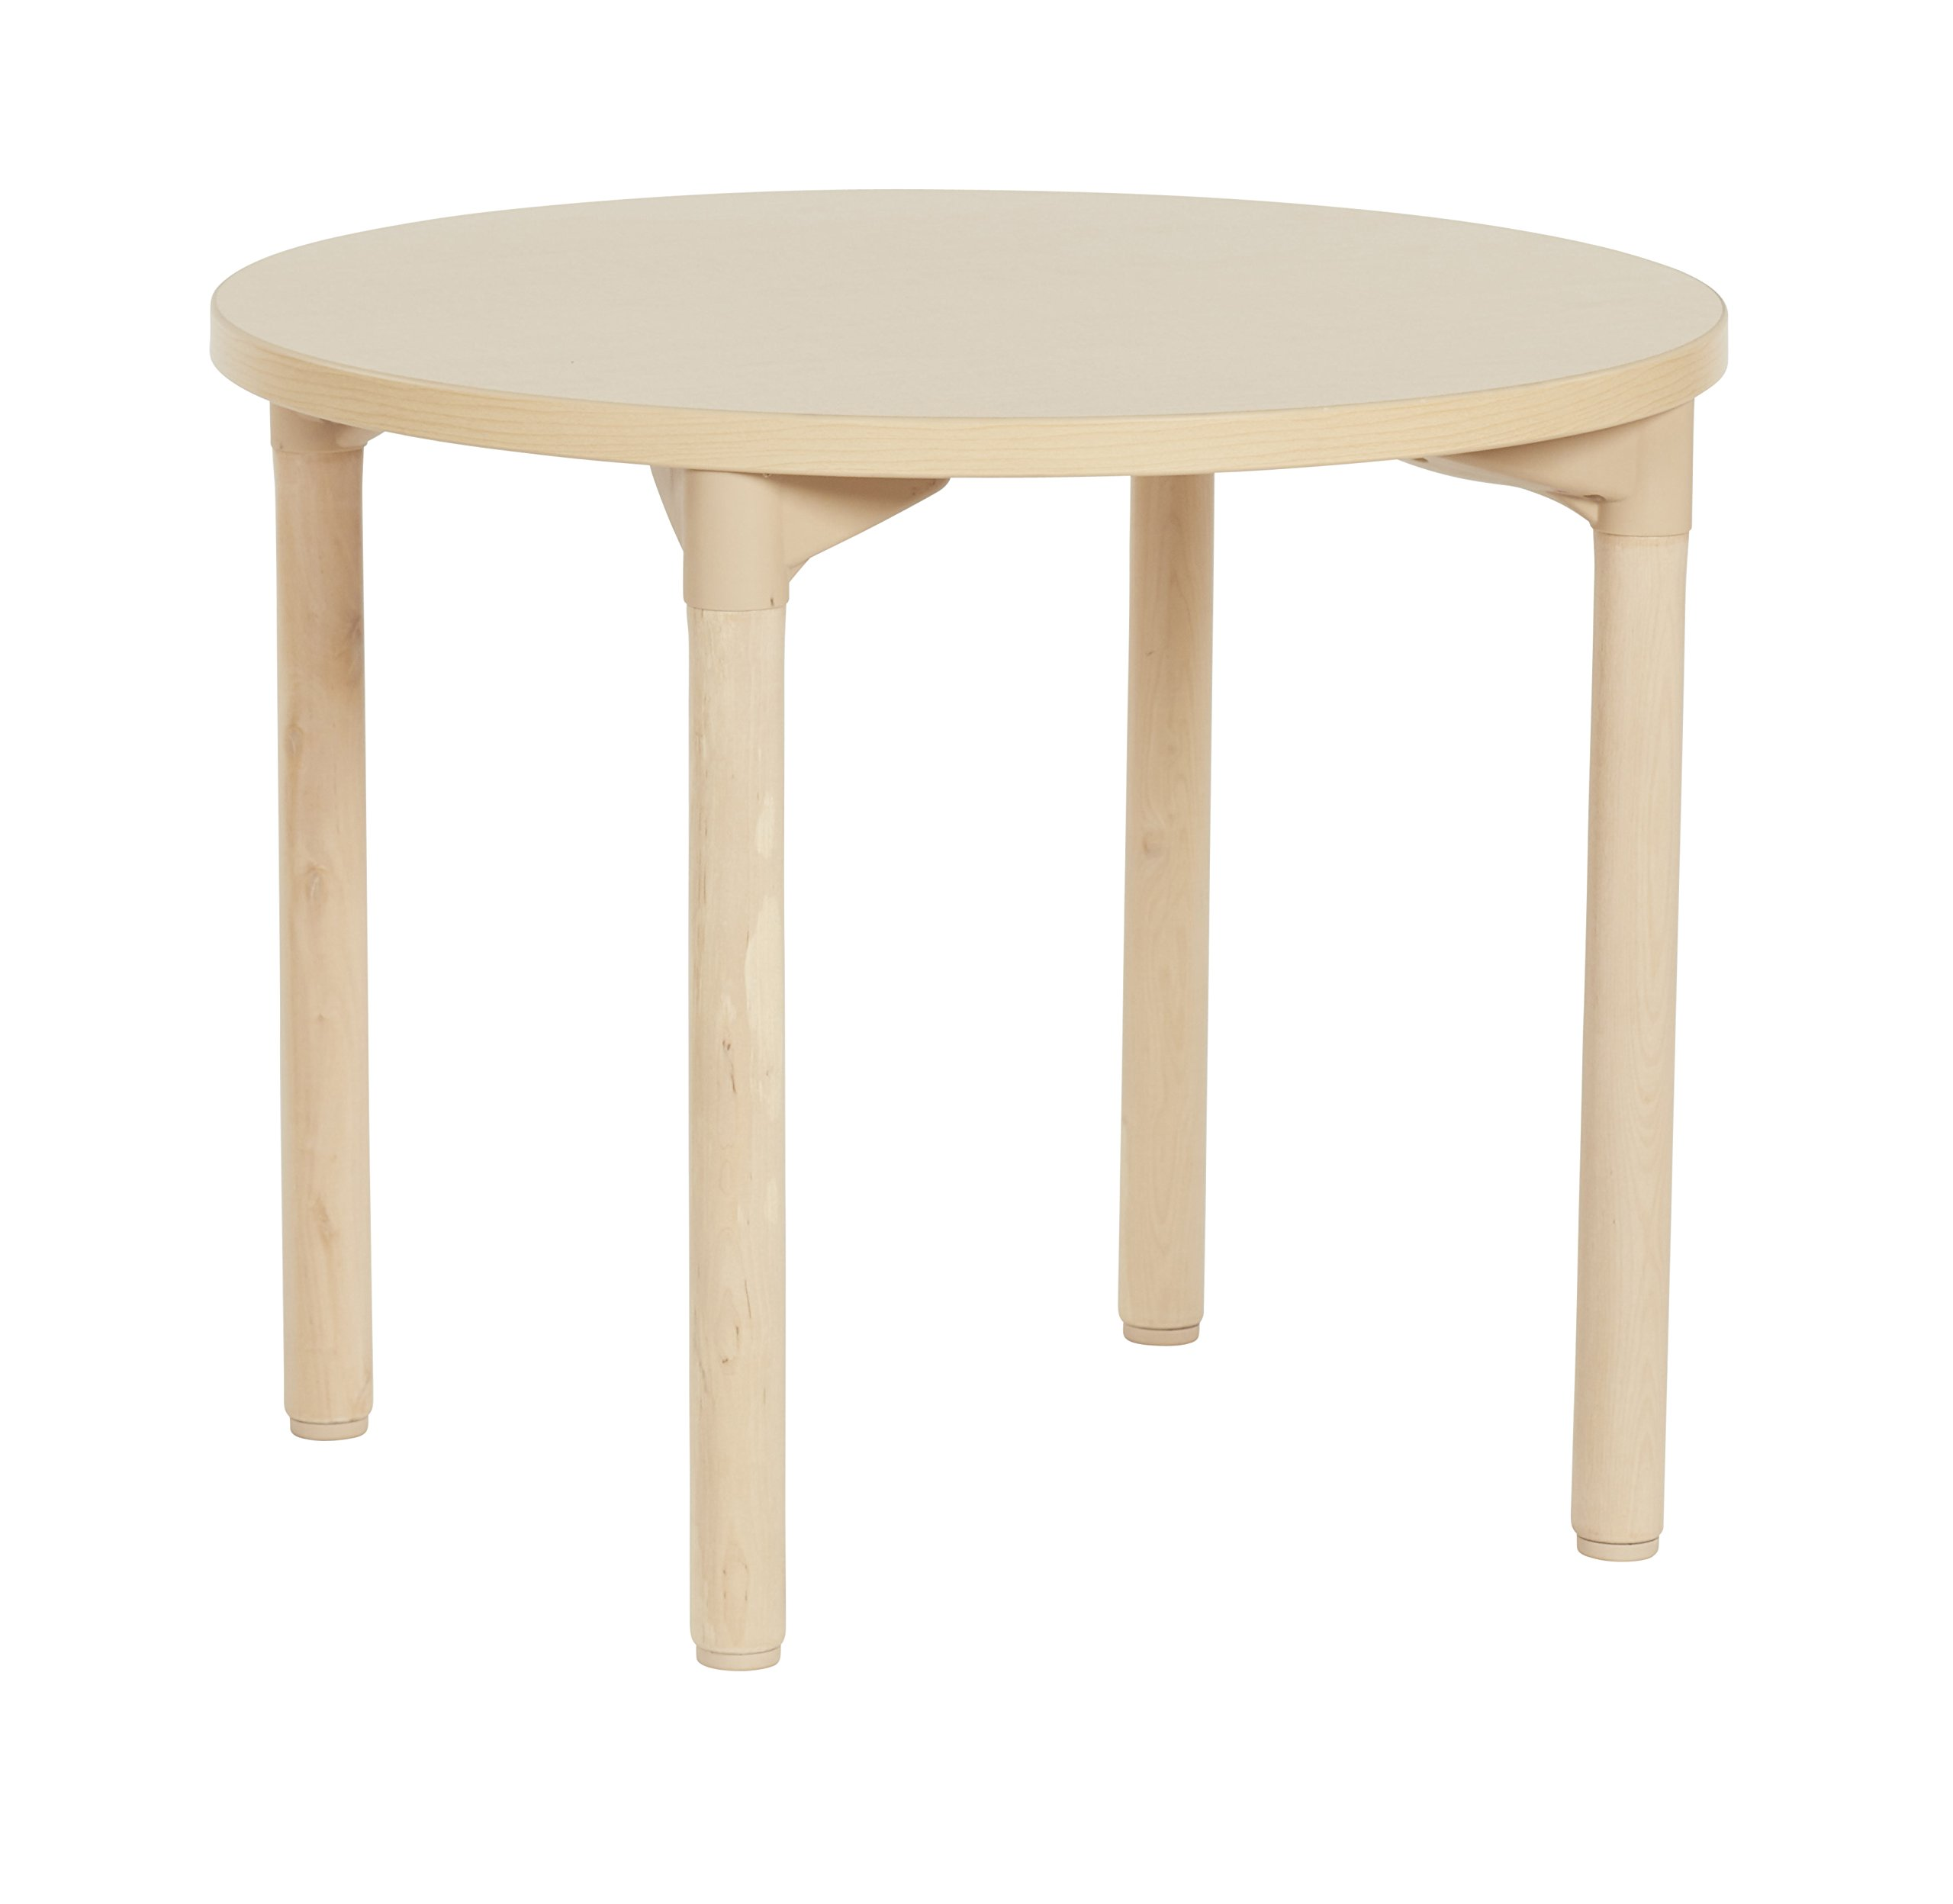 ECR4Kids 30'' Round Maple All-Purpose School Activity Table with Thermo-Fused Edge and Wood Legs (18'' Leg Height)